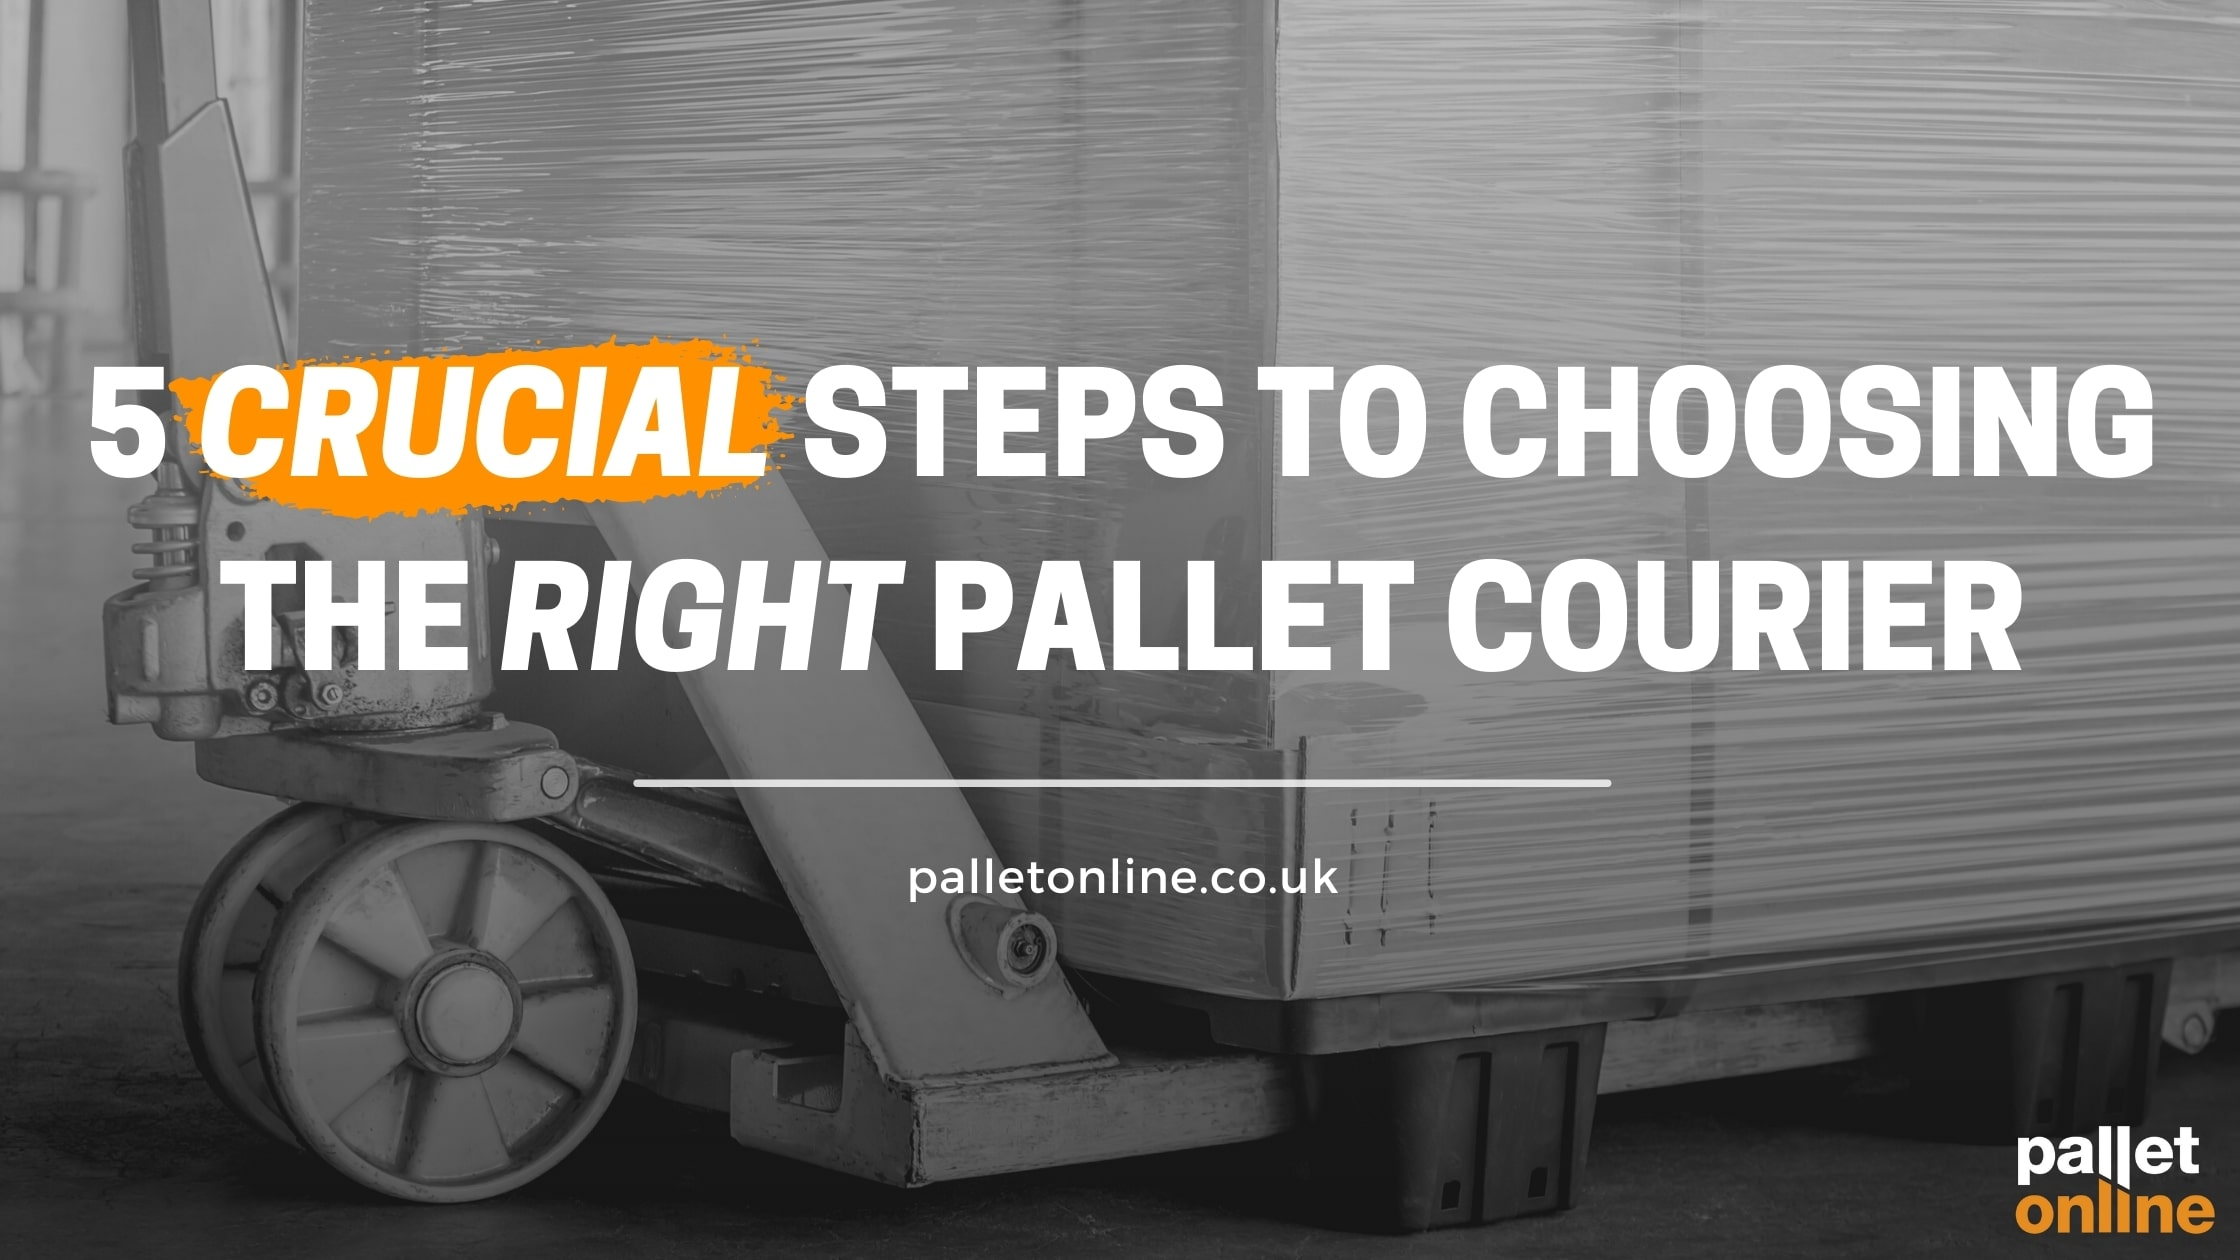 5 Crucial Steps To Choosing The Right Pallet Courier